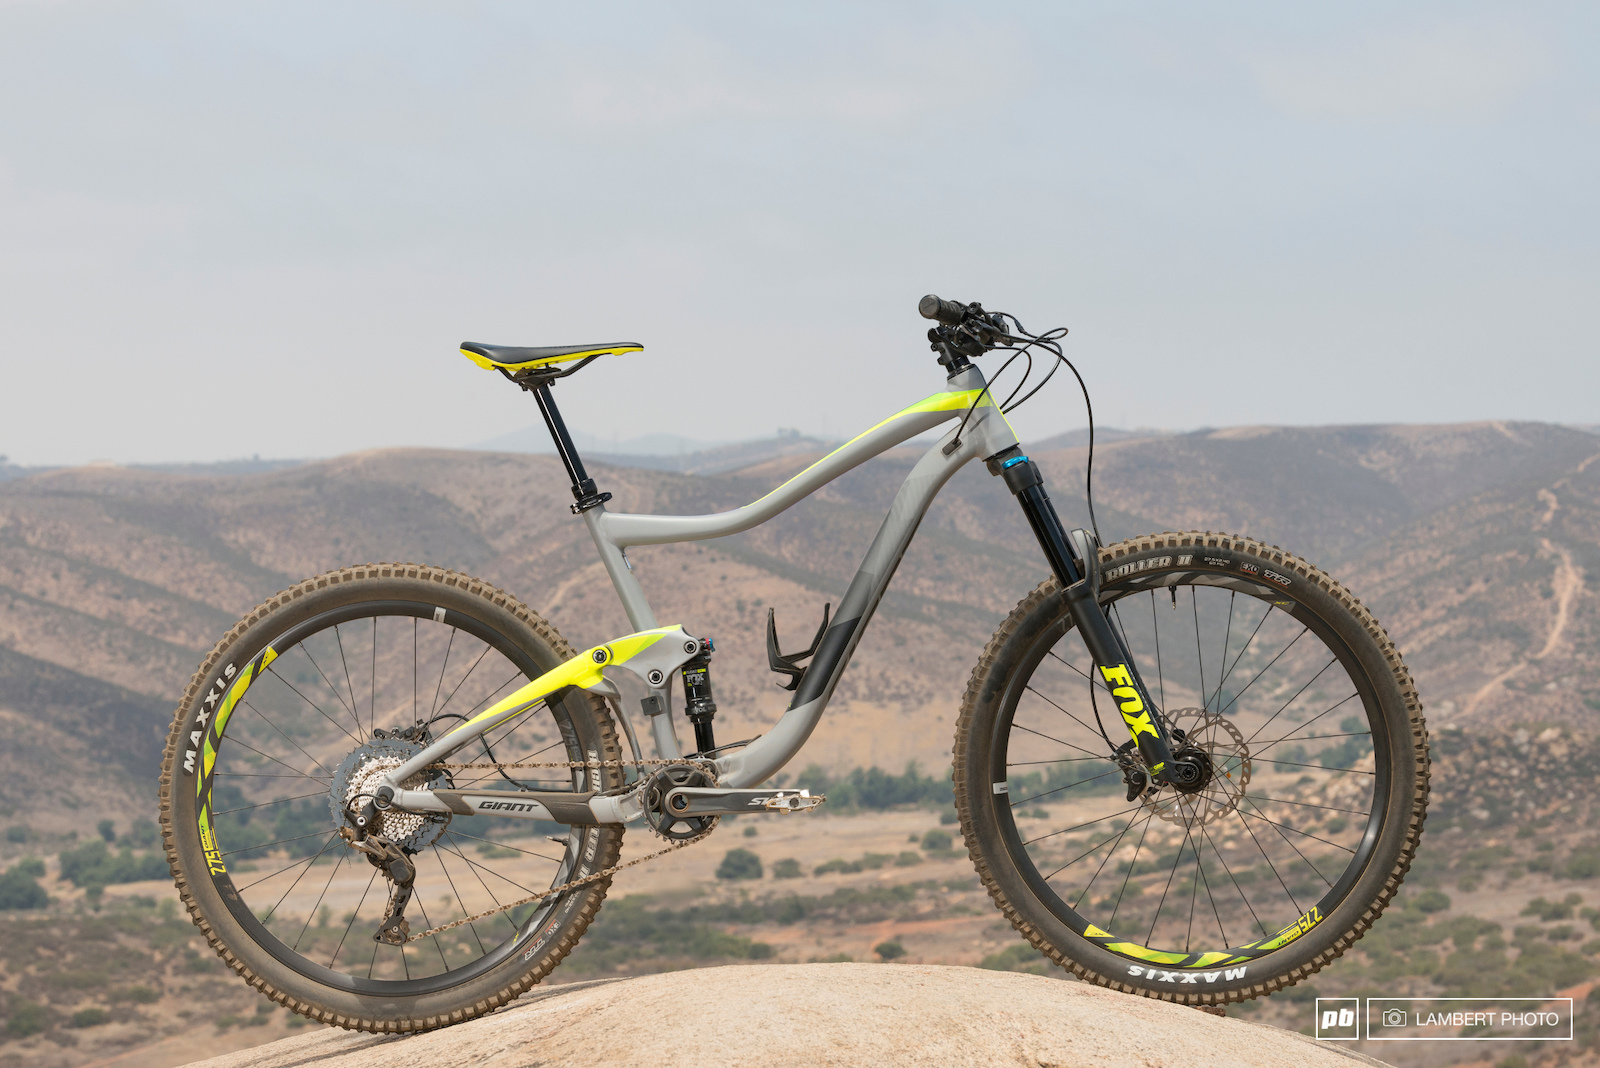 fd47a090fa3 Review: Giant Trance 2 - Pinkbike